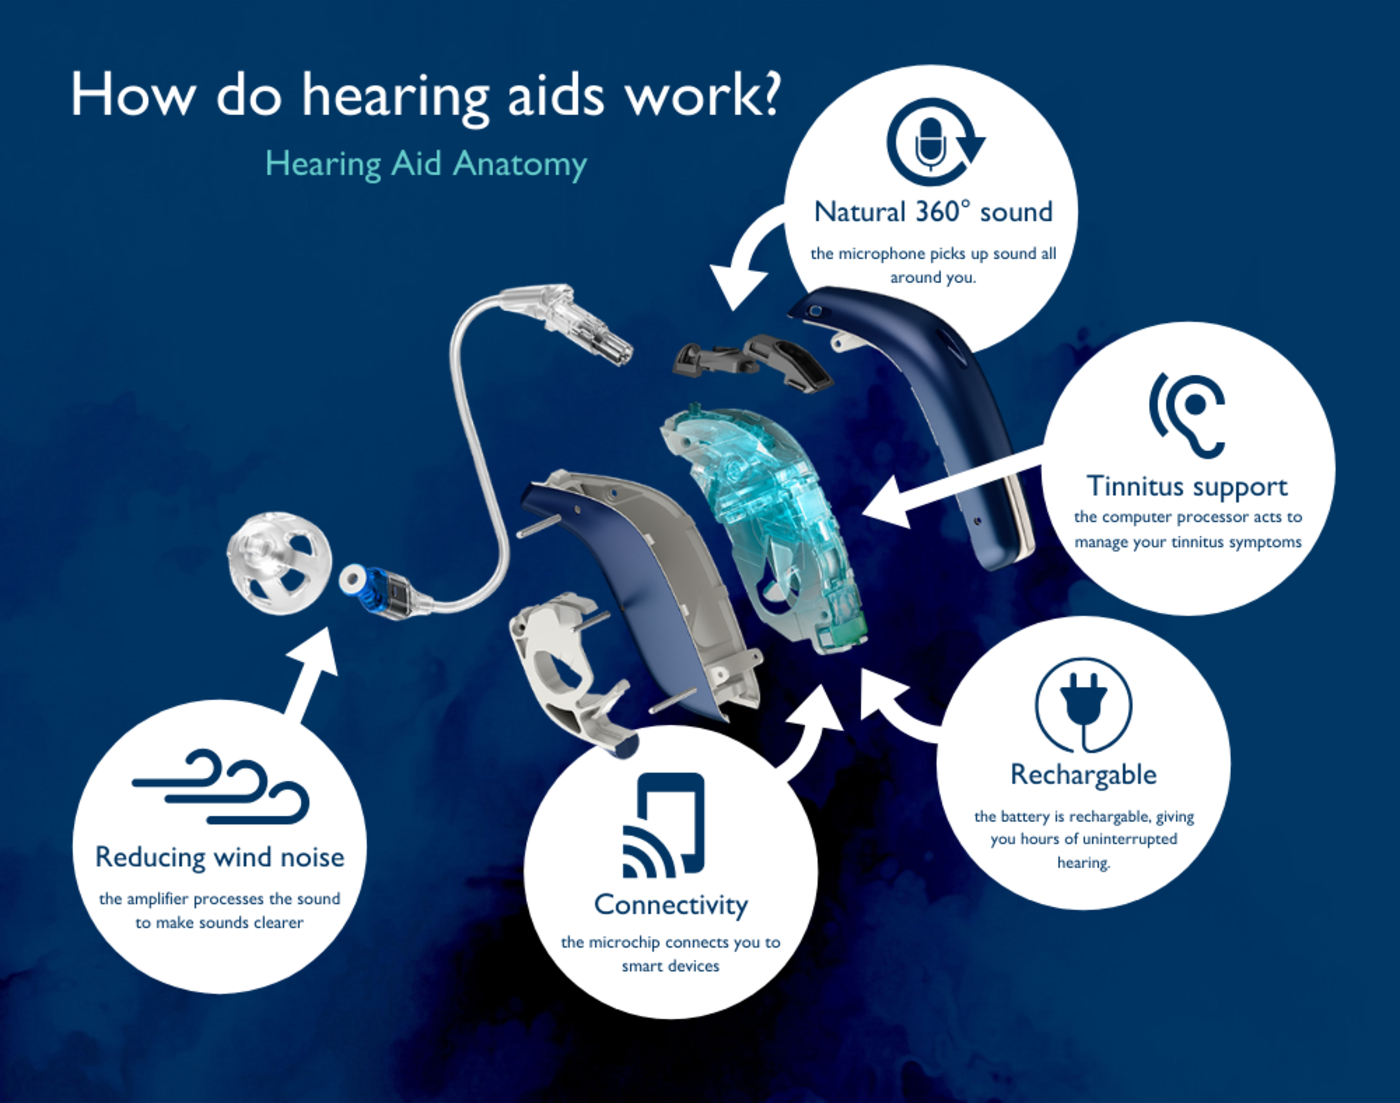 How do hearing aids work diagram